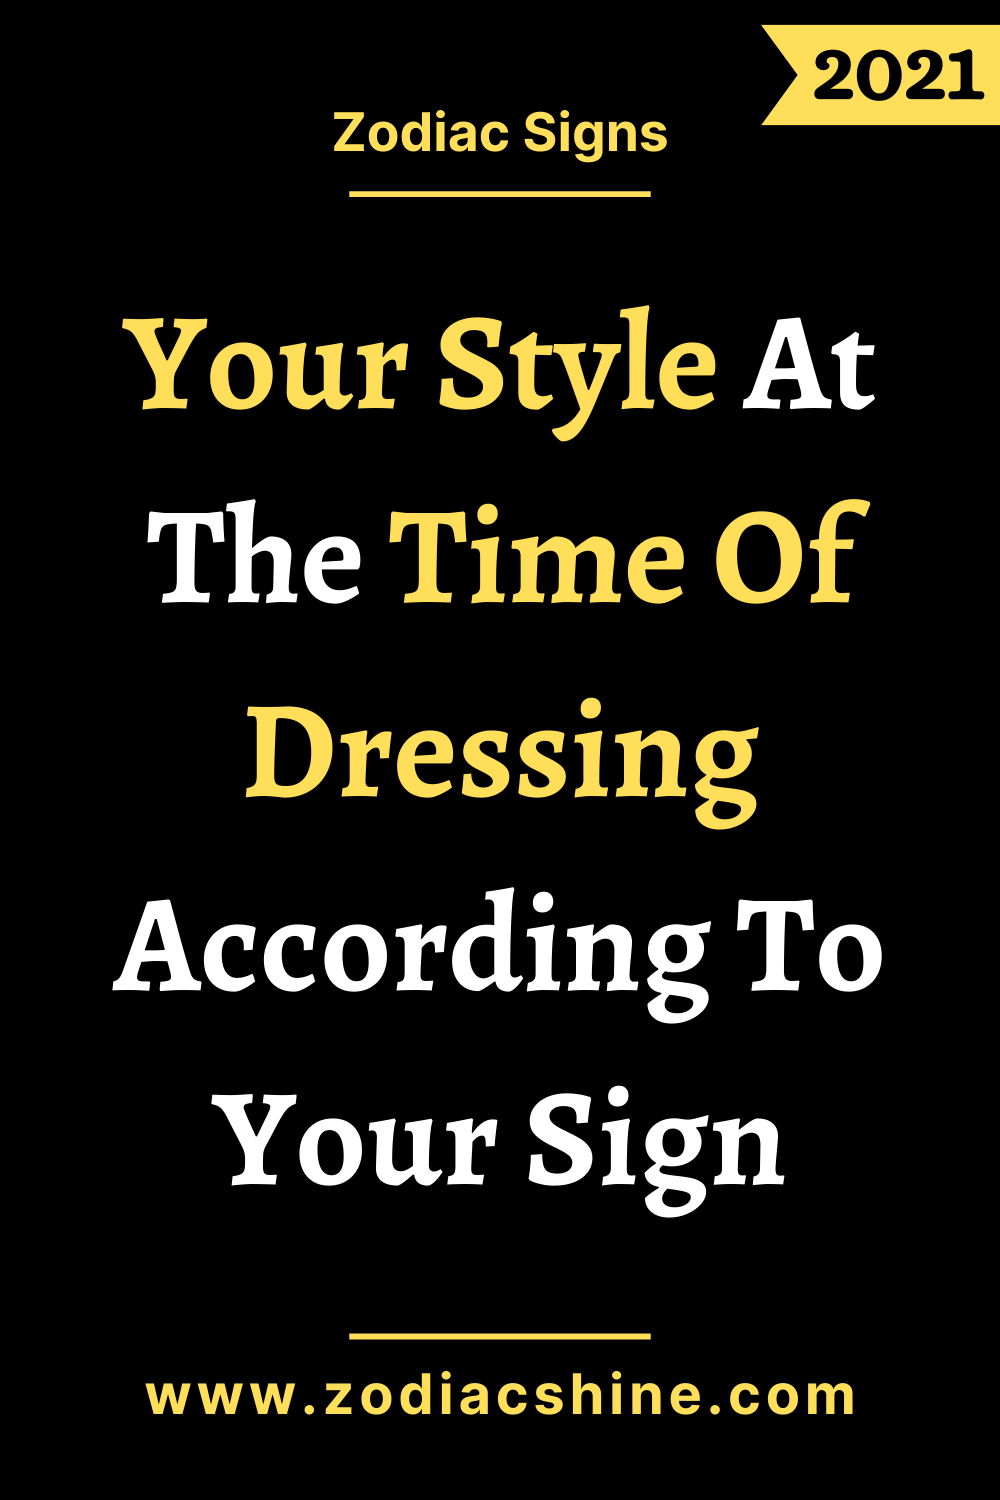 Your Style At The Time Of Dressing According To Your Sign